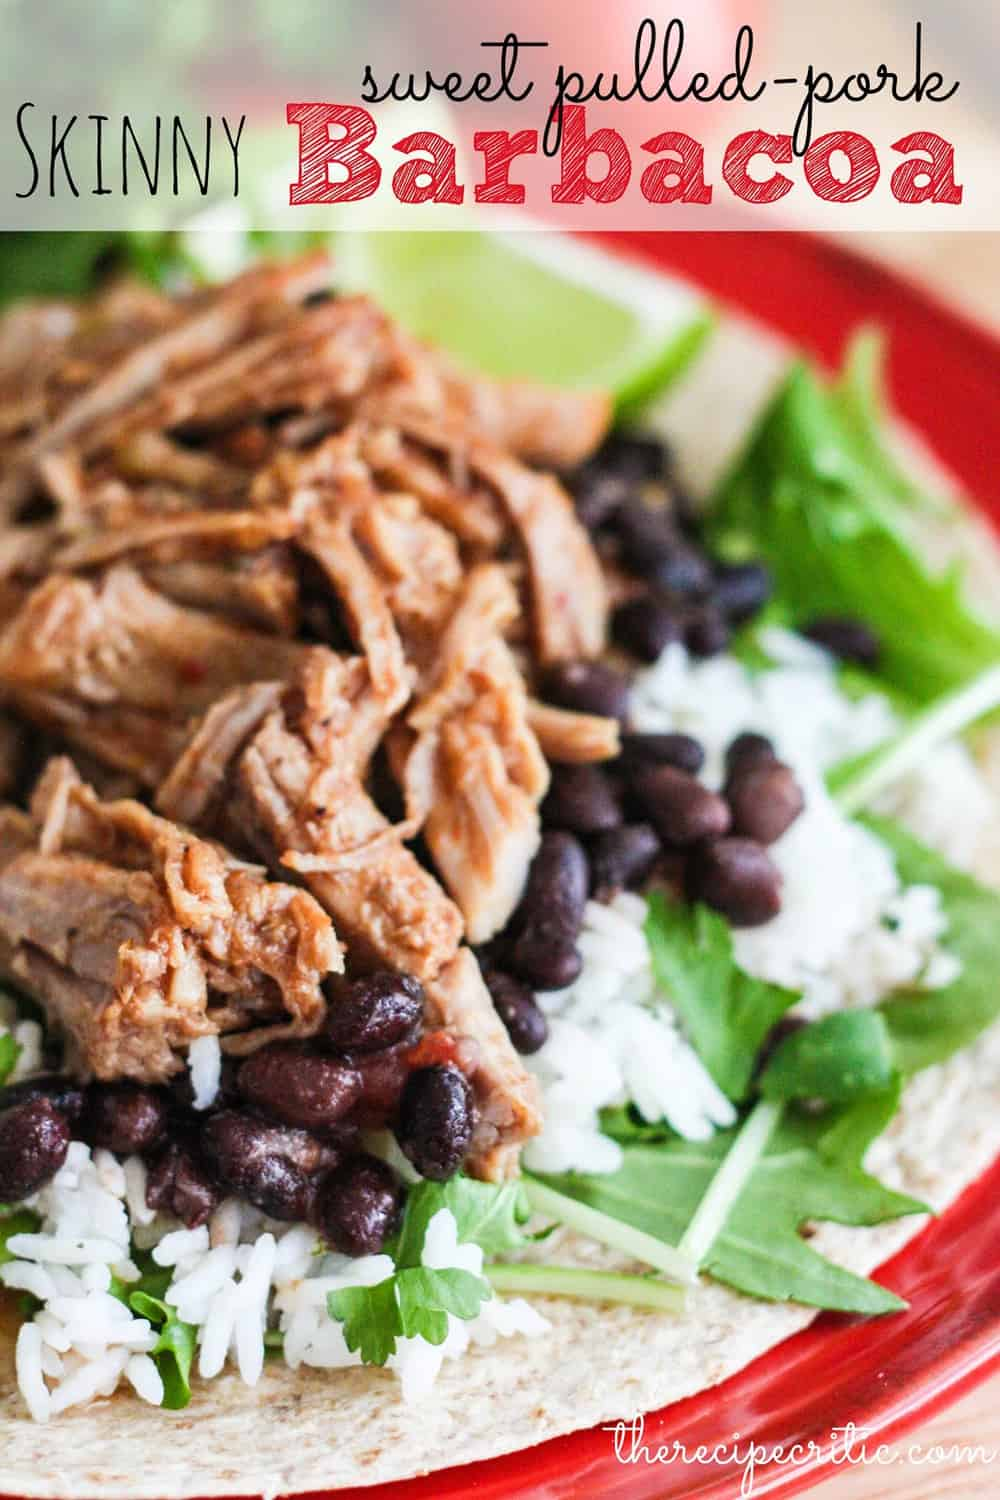 Cafe Rio Sweet Pork Barbacoa Salad Recipe